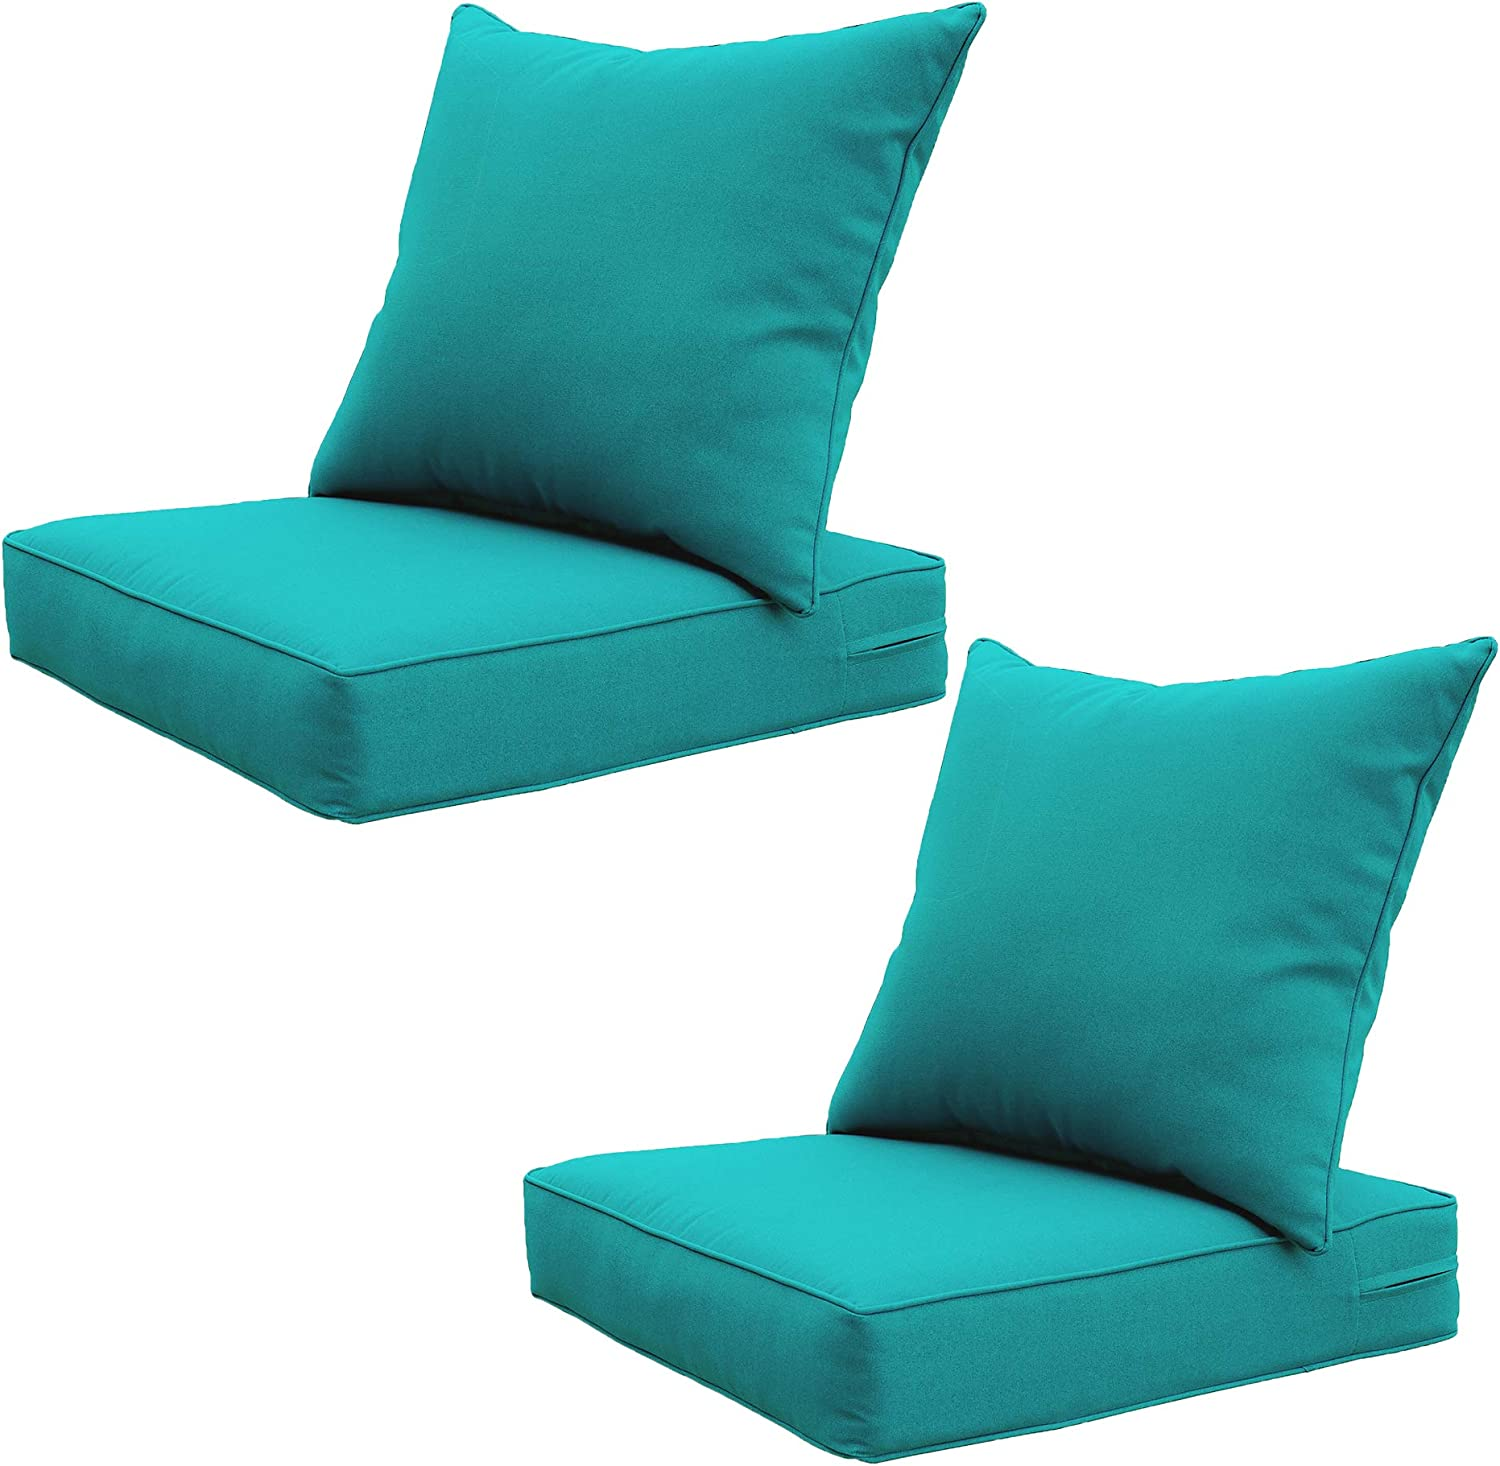 SewKer Indoor/Outdoor Patio Deep Seat Cushion Set Two Set-Green Used